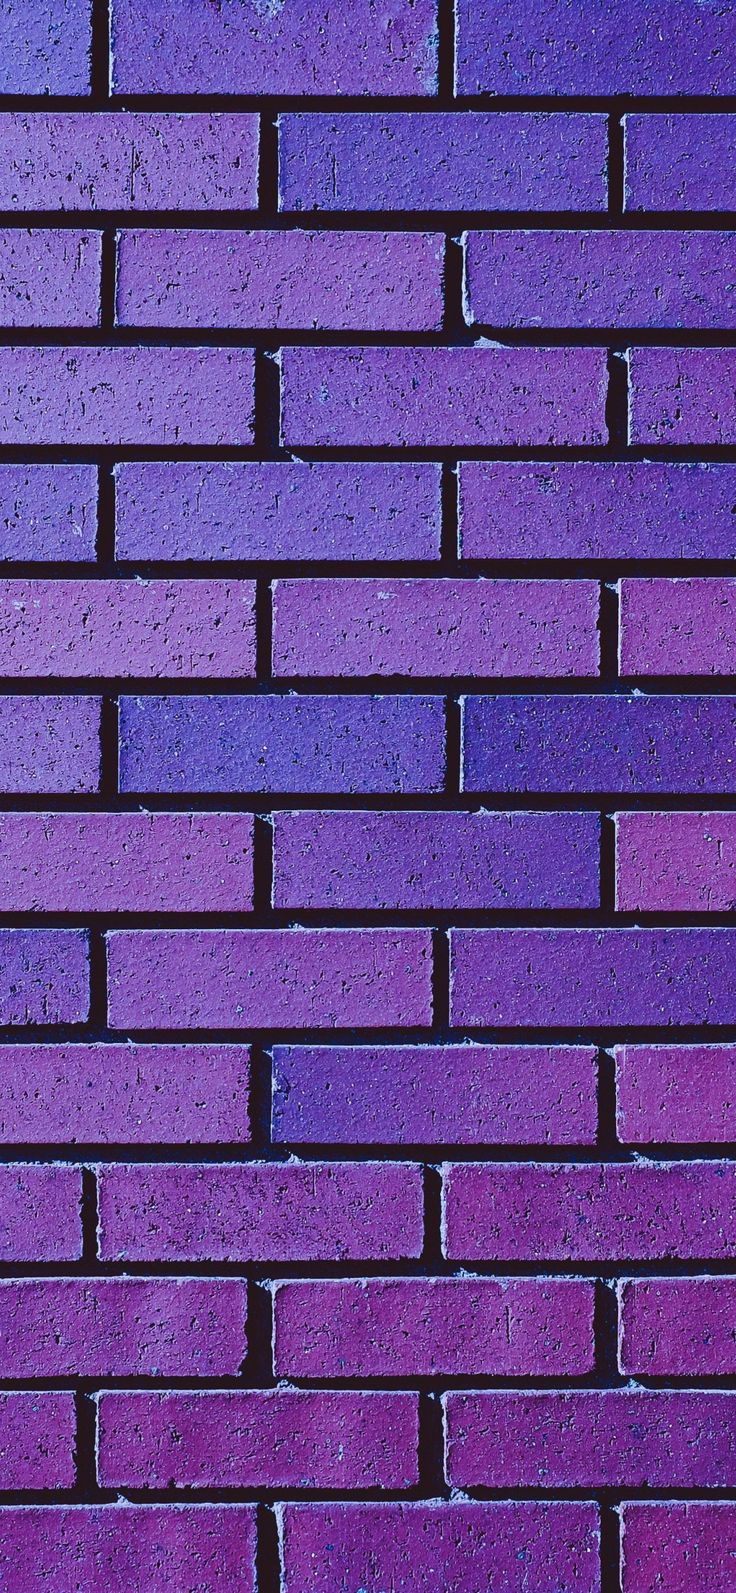 1125×2436 Violet wall, bricks, pattern wallpaper